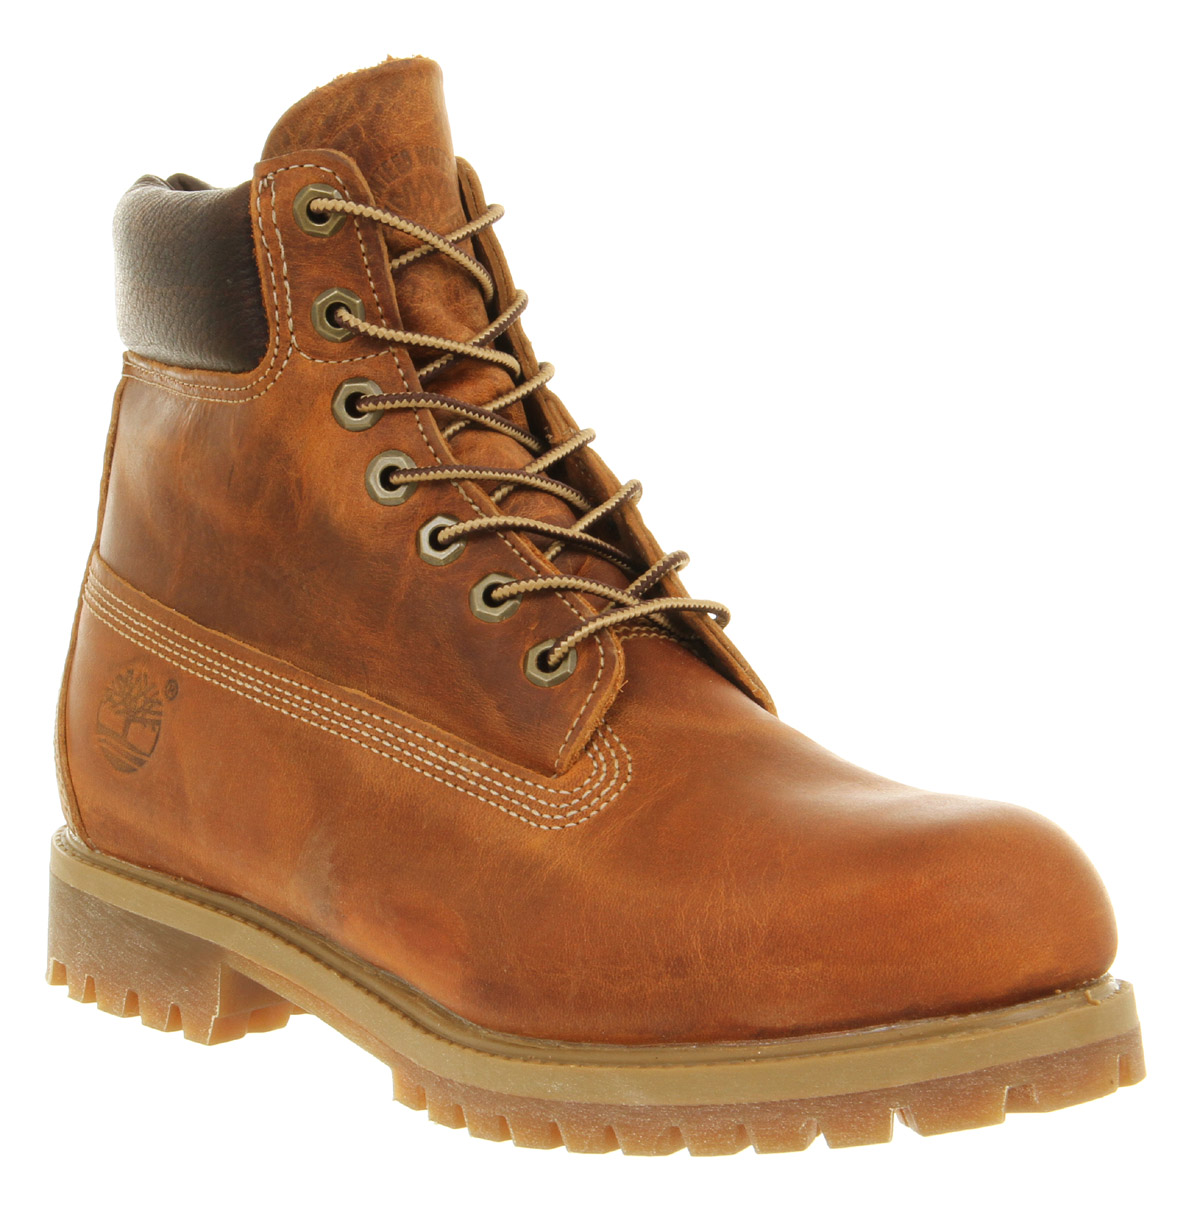 Mens-Timberland-6-In-Vintage-Boot-Burnt-Orange-Boots